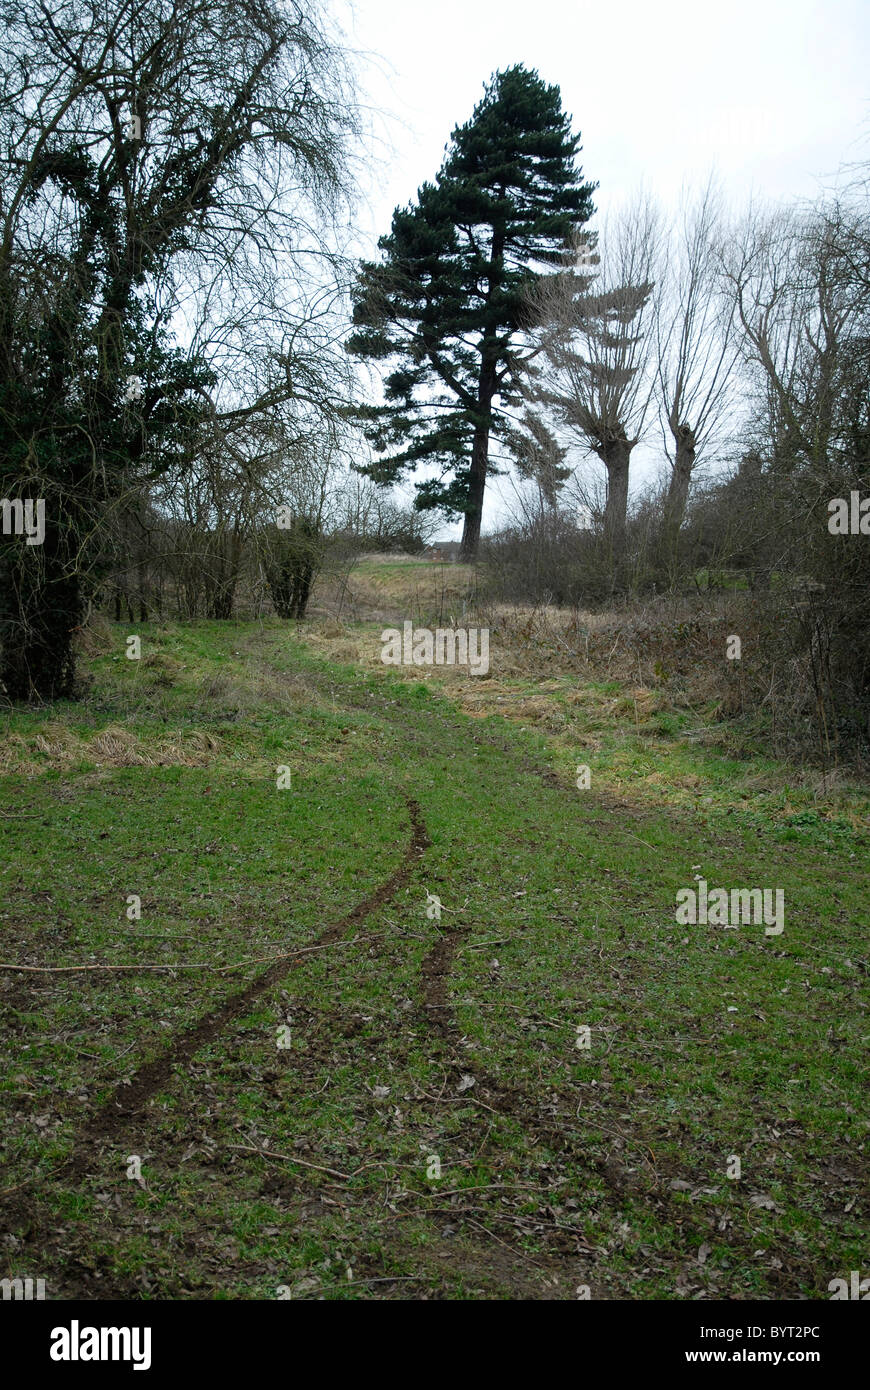 Tracks left by illegal green lane motorcycling on greenbelt land in Northamptonshire, 6th February, 2011. - Stock Image